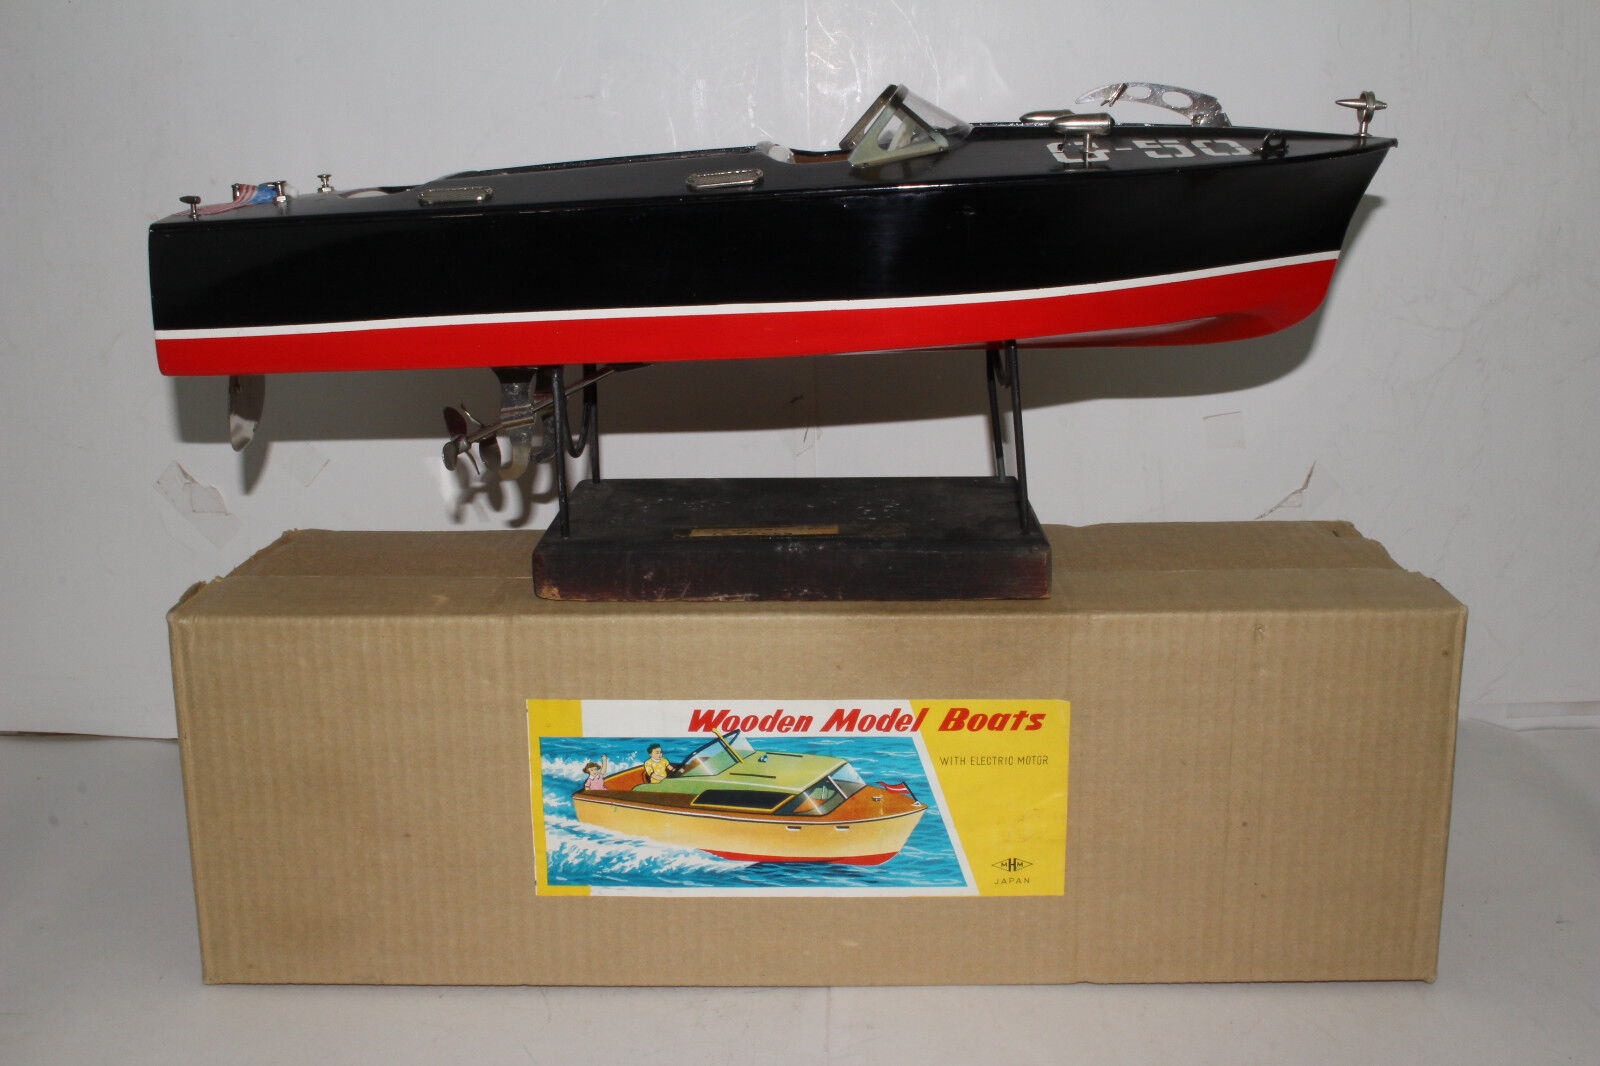 594ms Toy Boat, Japanese MHM G-50 Speed Boat Wood Nice with Original